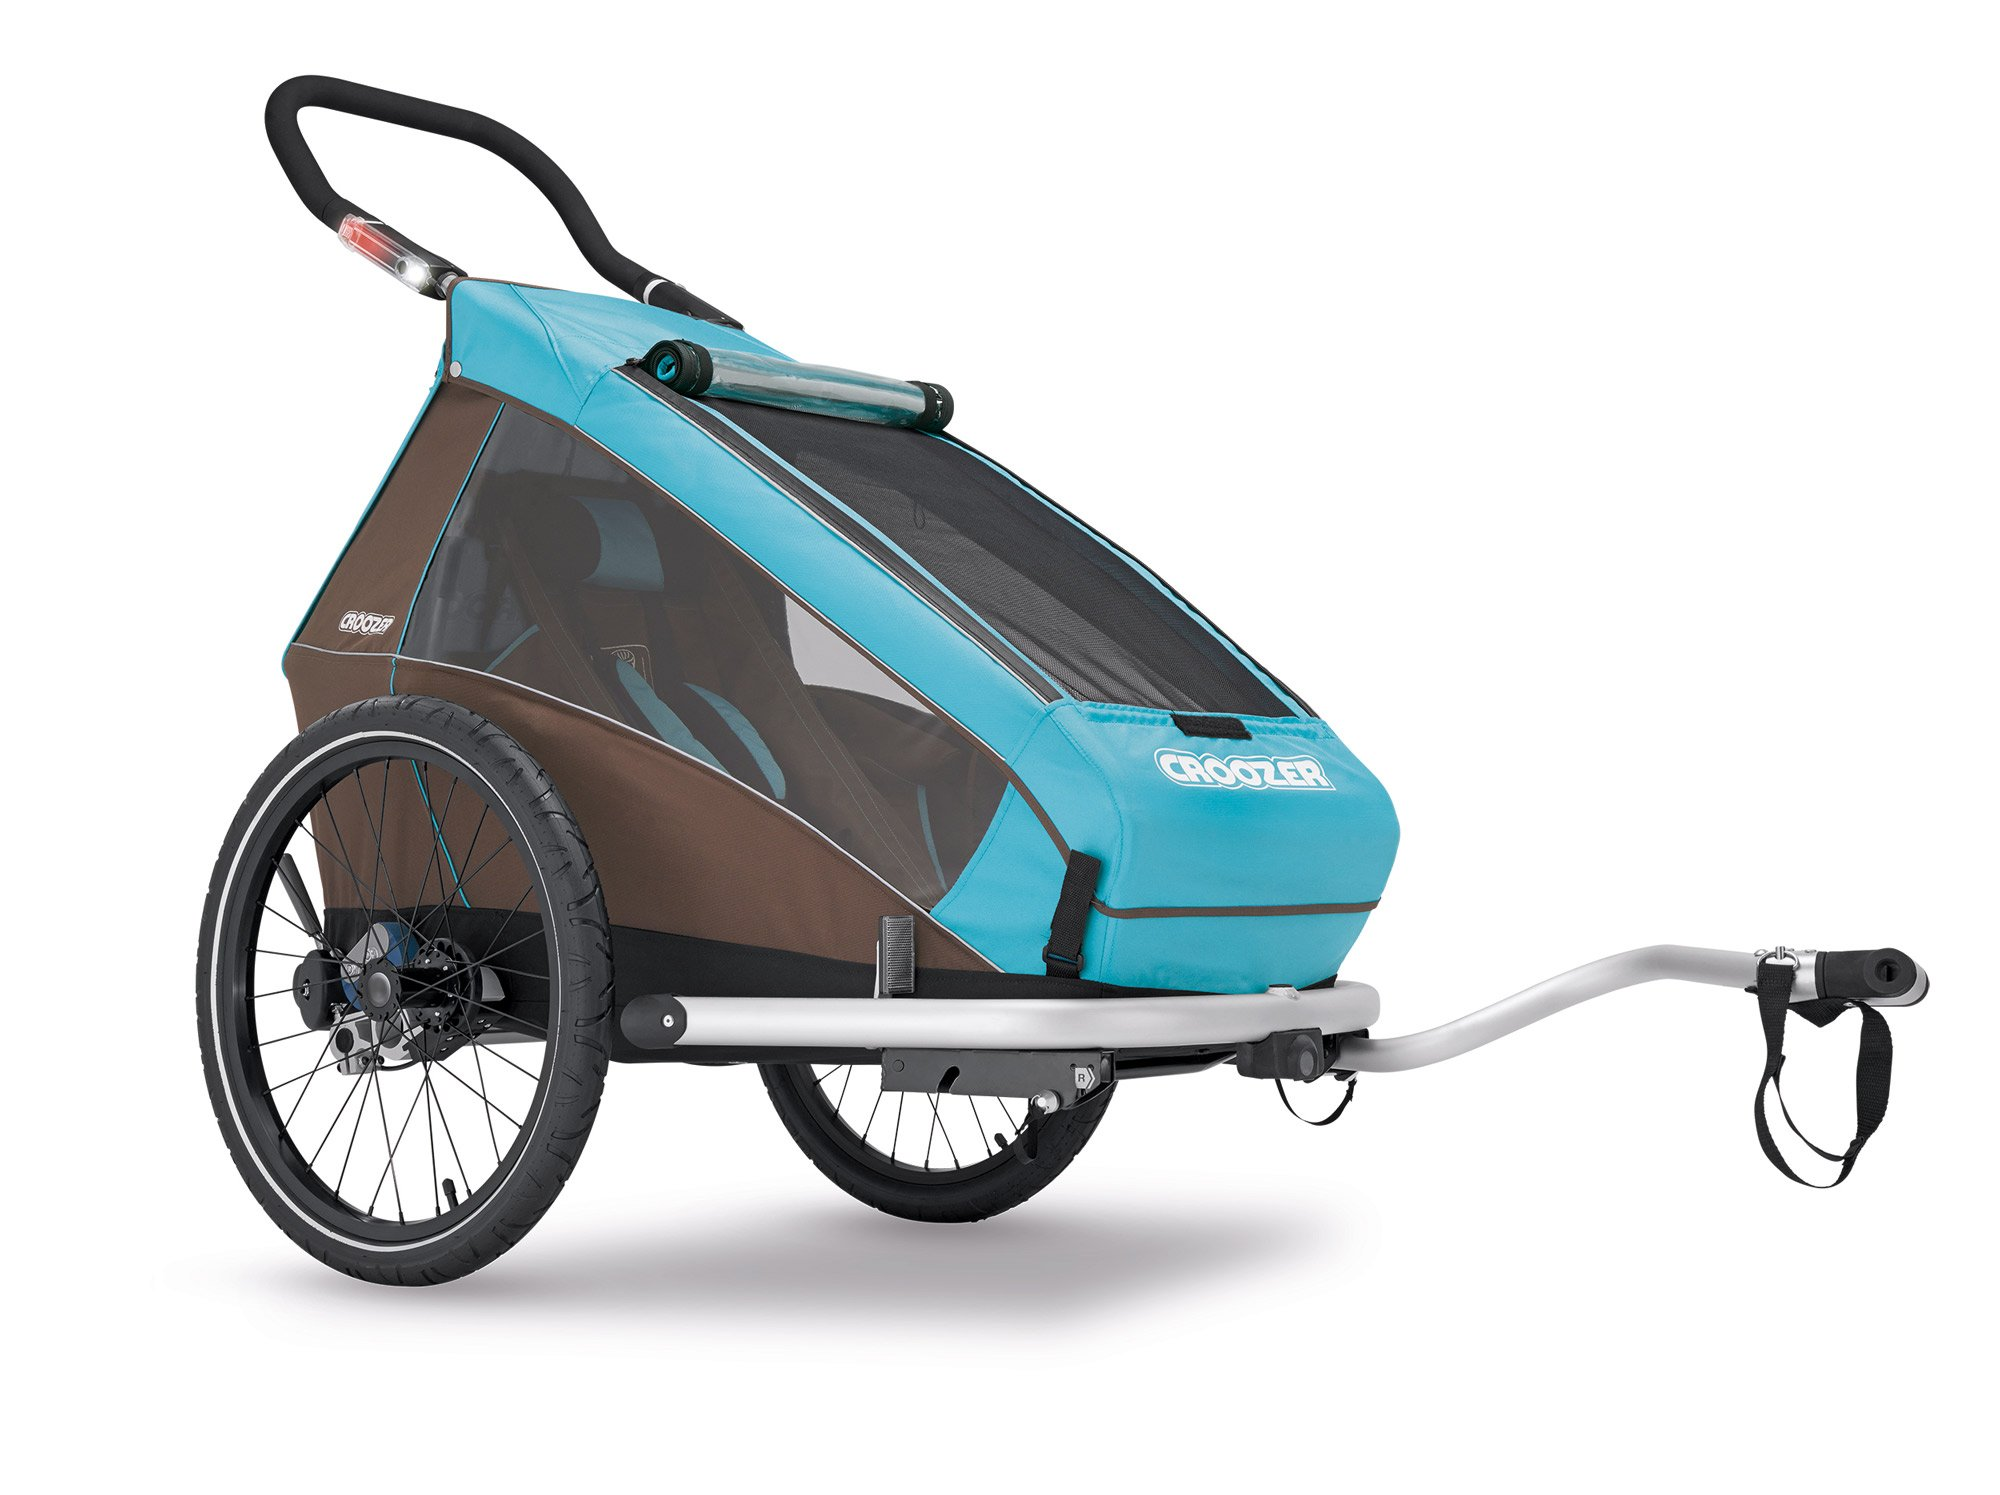 2016 Croozer Kid Plus for 1 - 3 in 1 Single Child Trailer Sky Blue / Brown